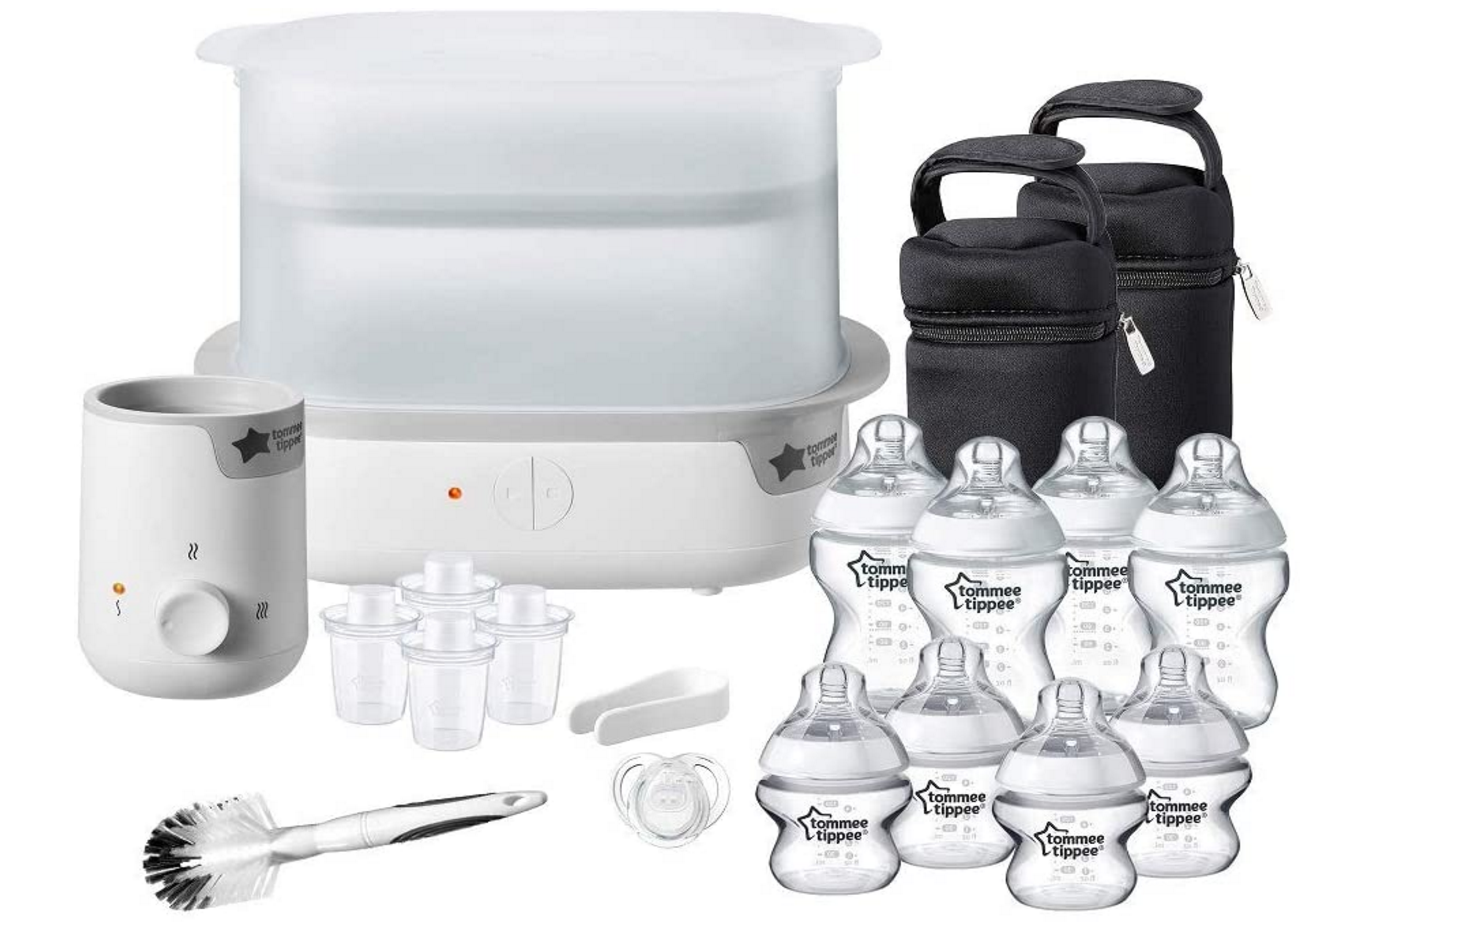 Tommee Tippee - Complete Feeding Set White